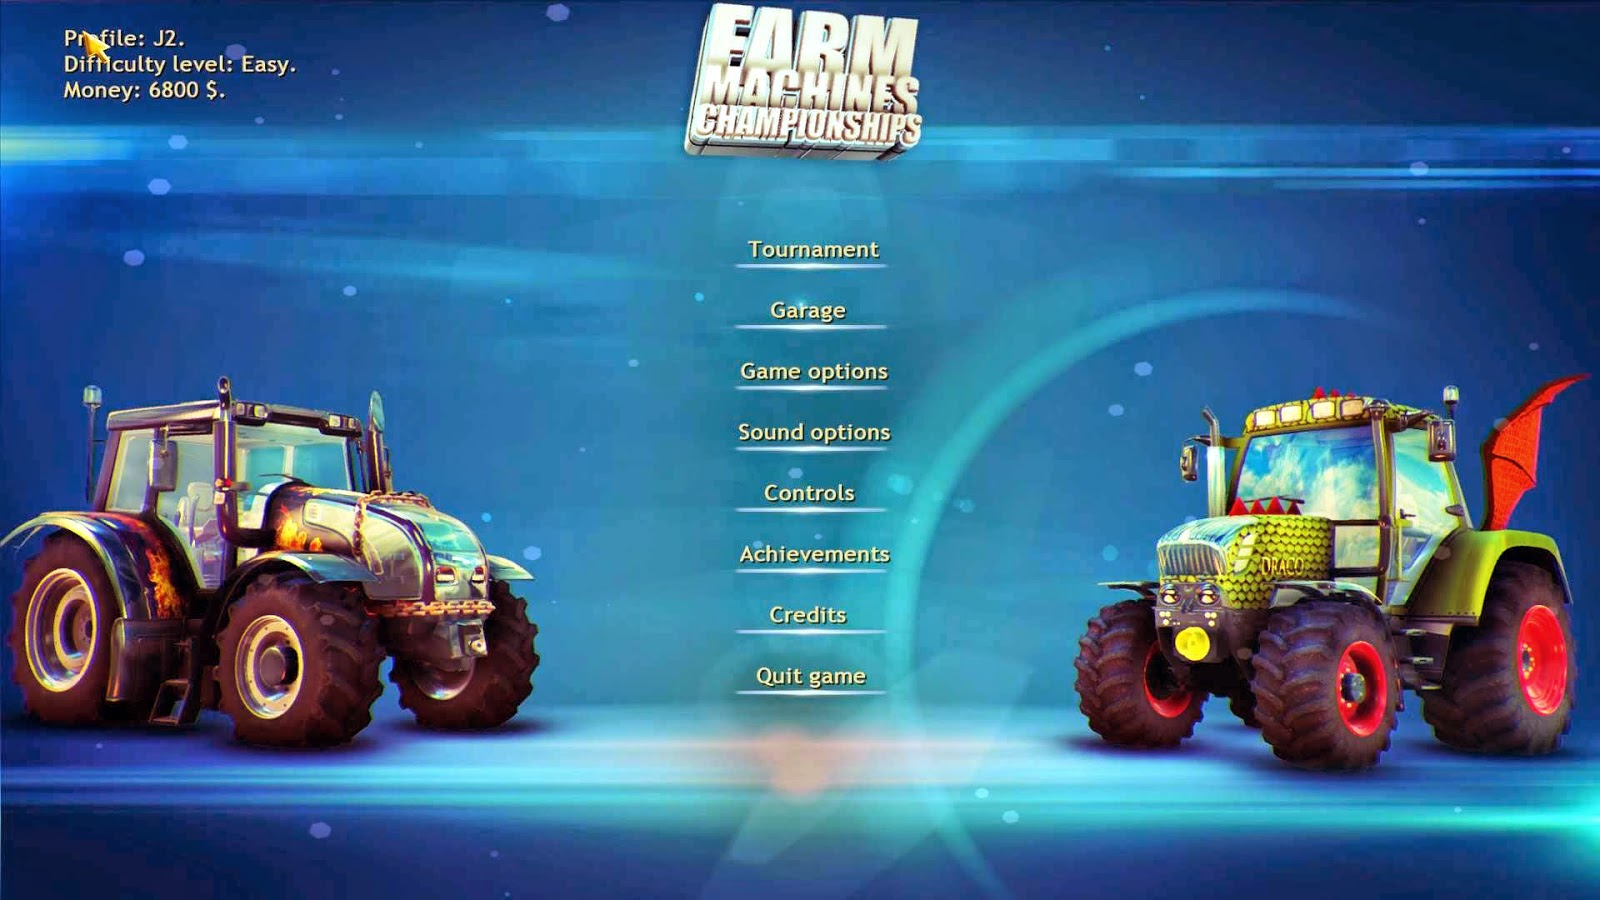 Farm-Machines-Championships